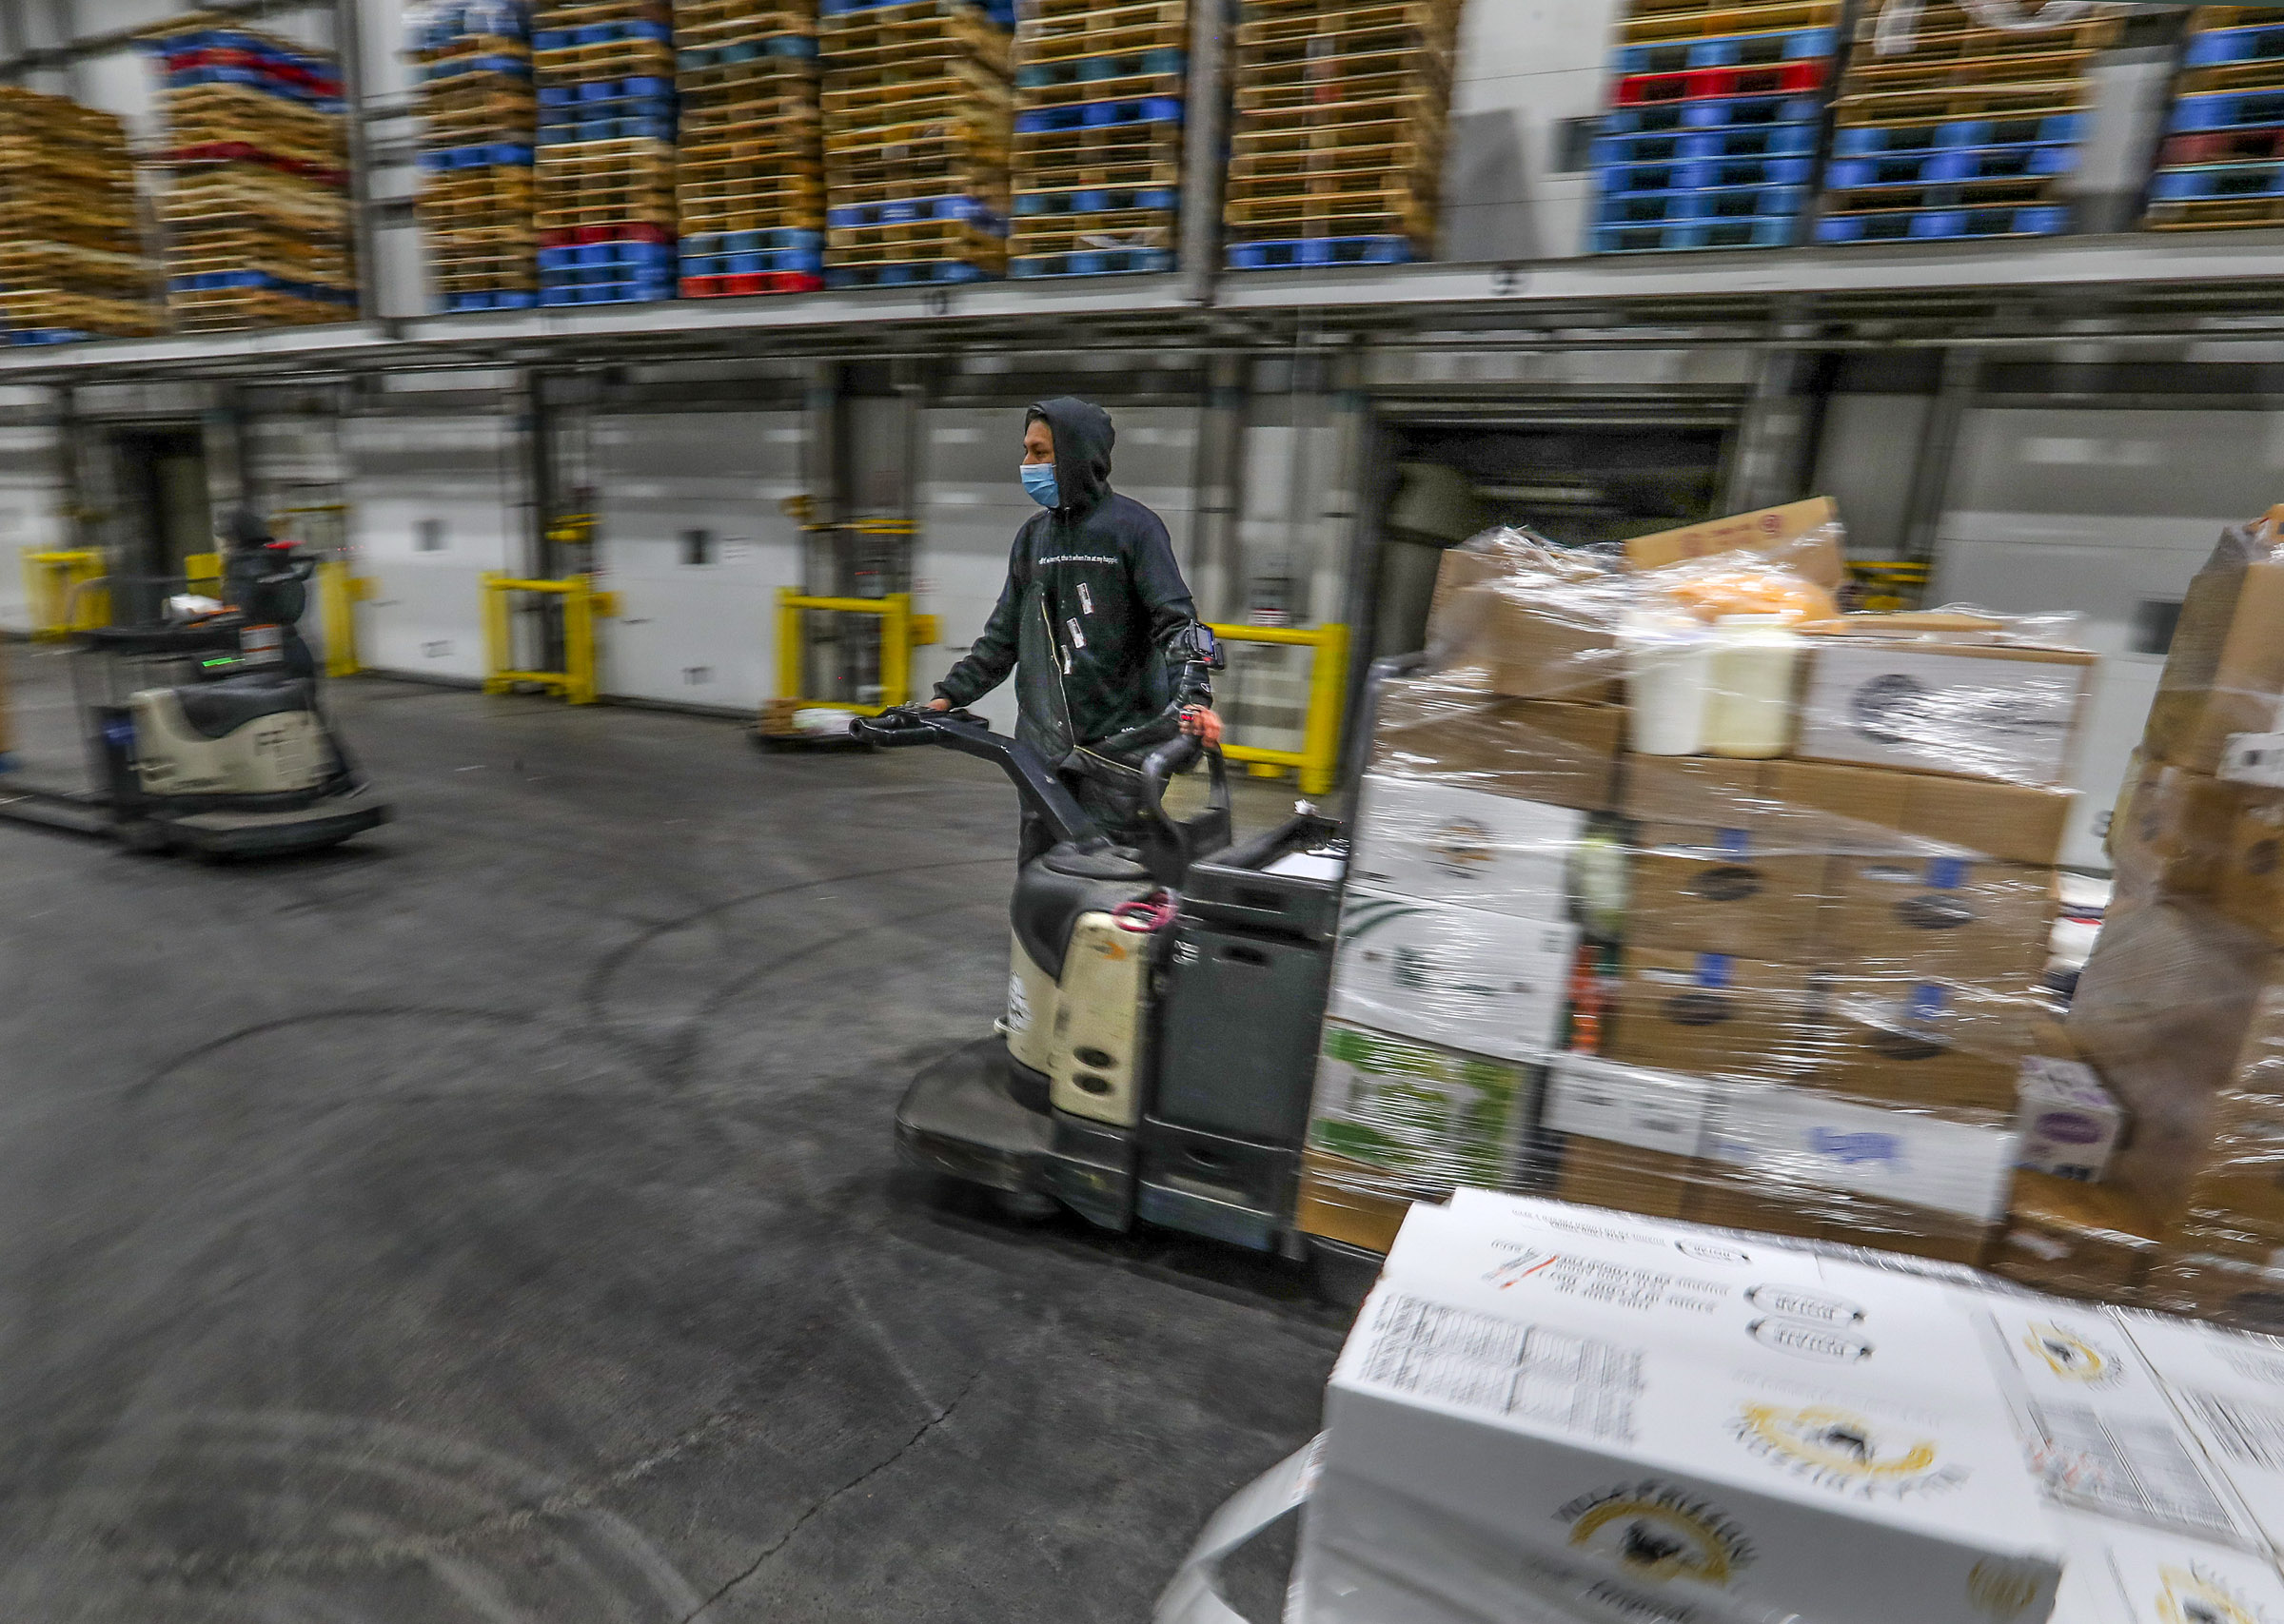 Saul Flores, a loader for Nicholas and Company, uses a forklift to load cold food into refrigerated trucks at the company's warehouse in Salt Lake City on Tuesday, Dec. 1, 2020.